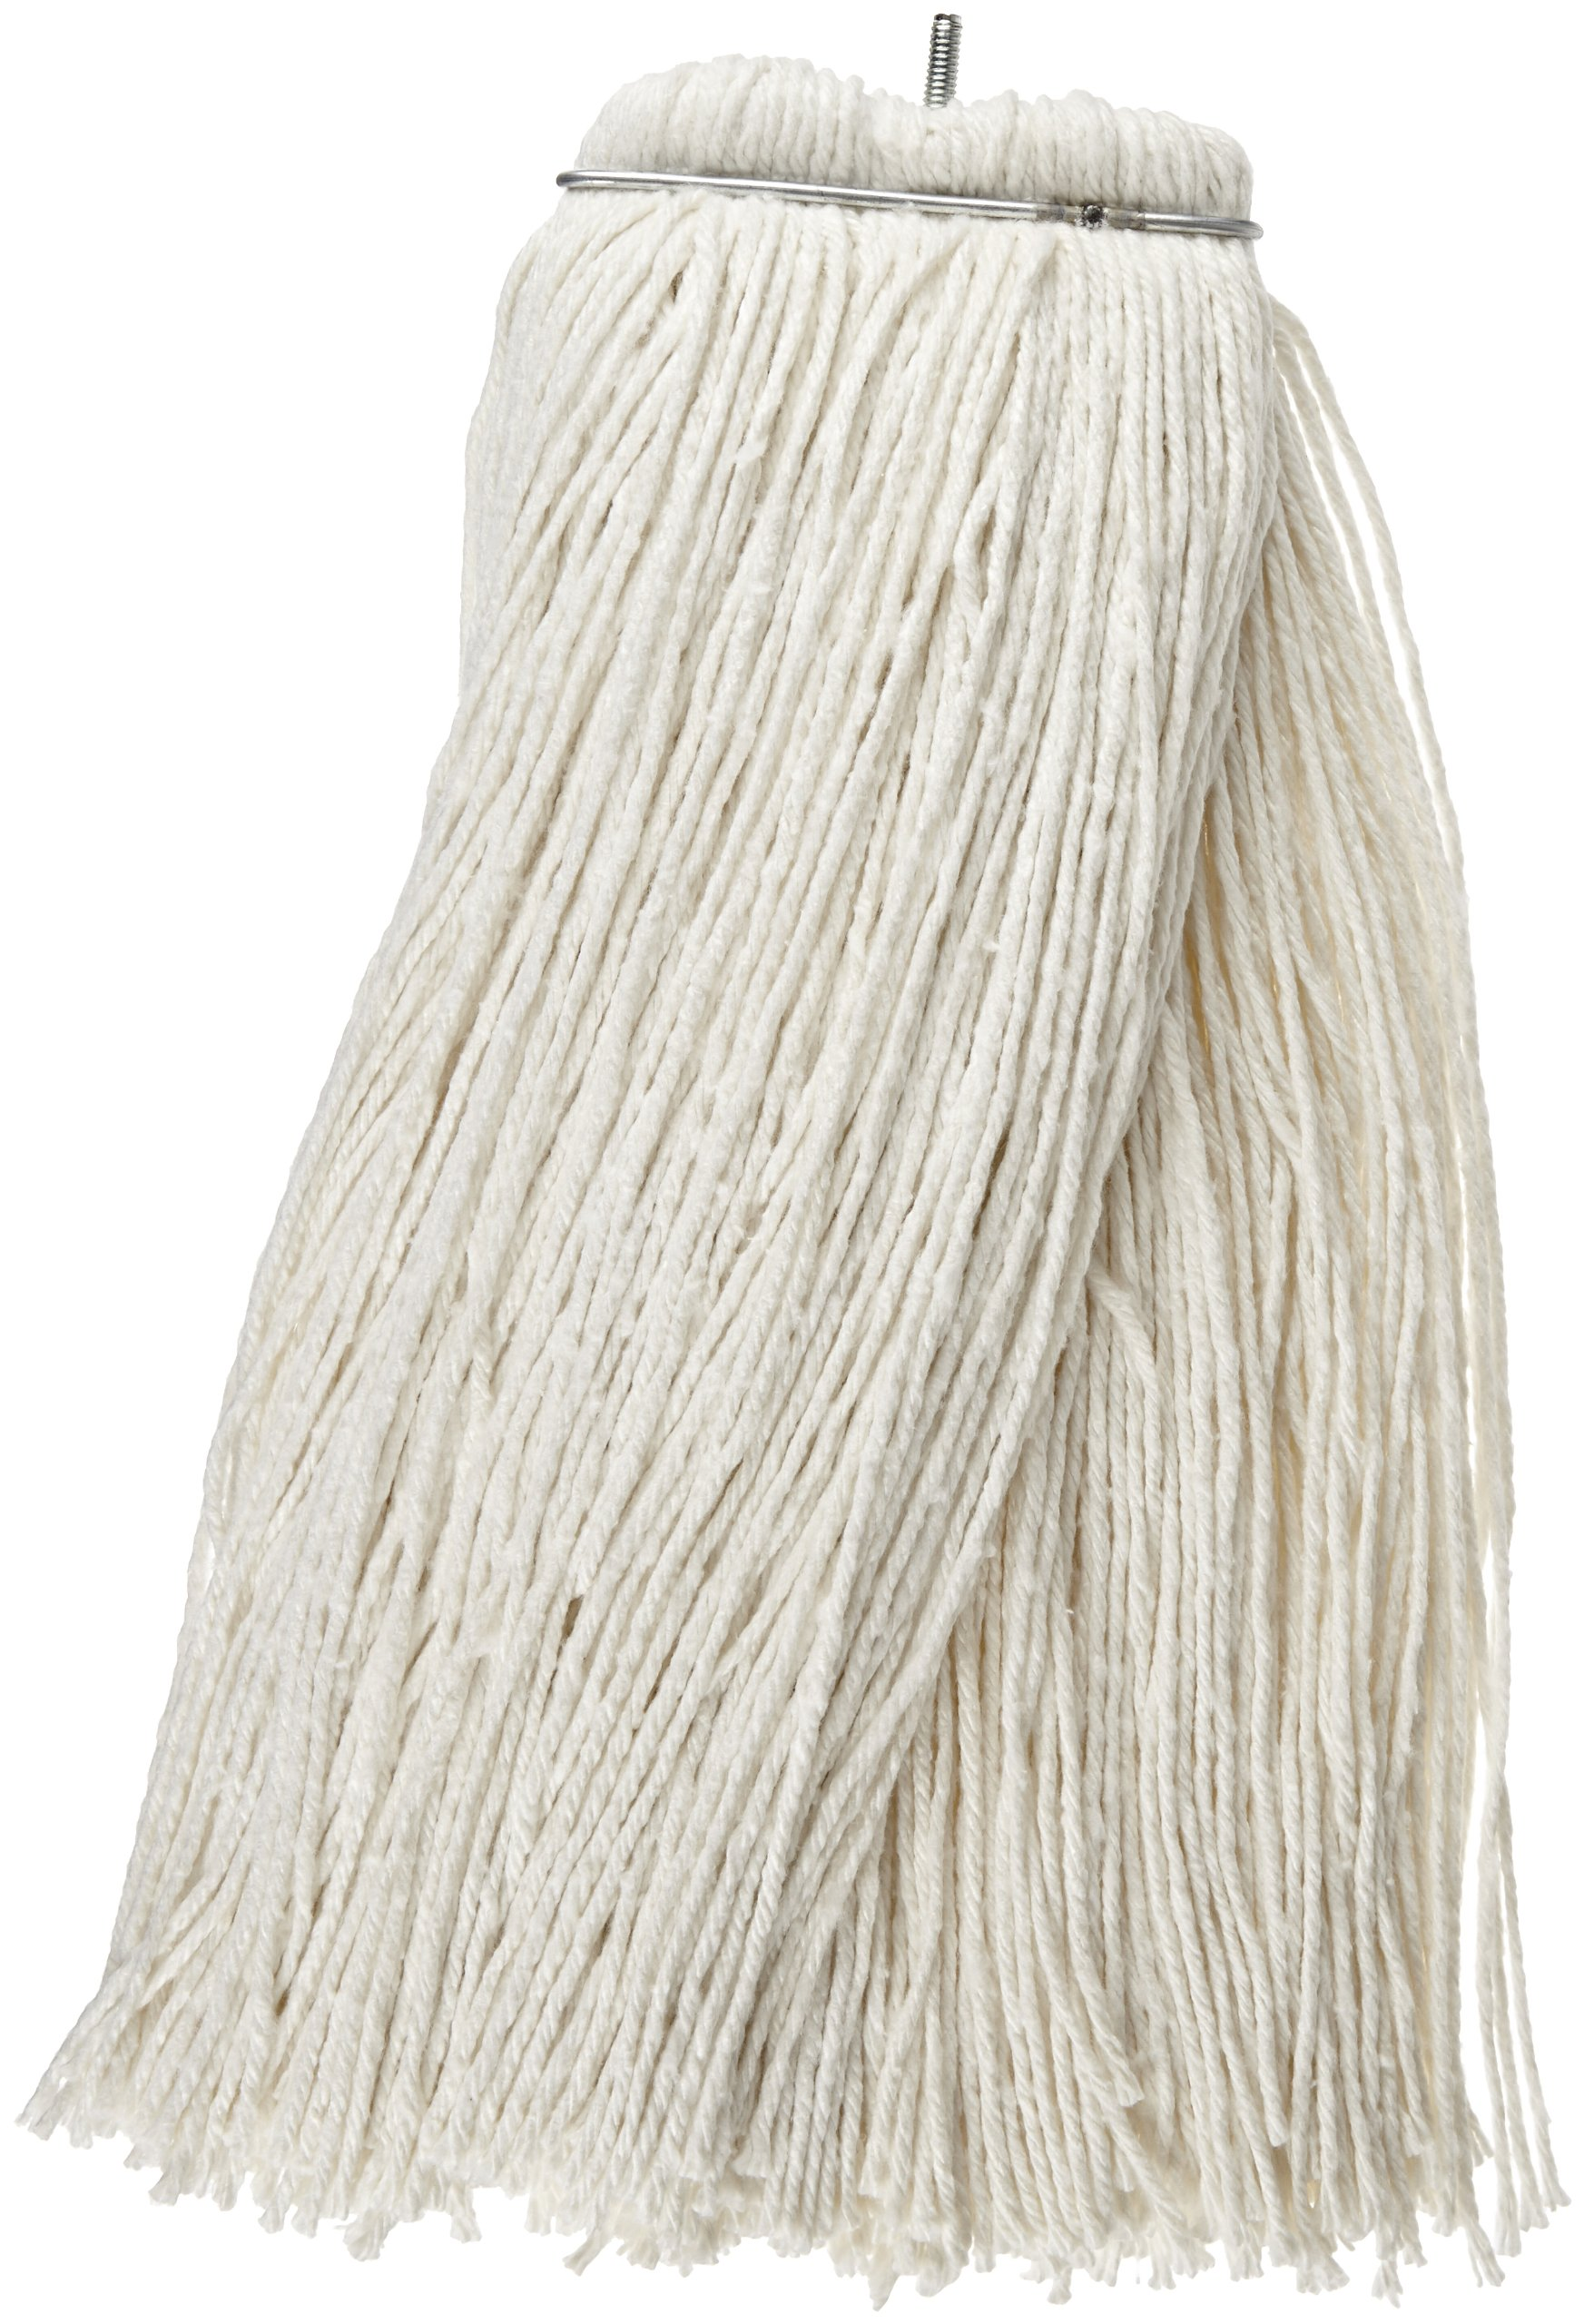 Impact 61124 Layflat Screw-Type Regular Cut-End Rayon Wet Mop Head, 24 oz, White (Case of 12) by Impact Products (Image #1)